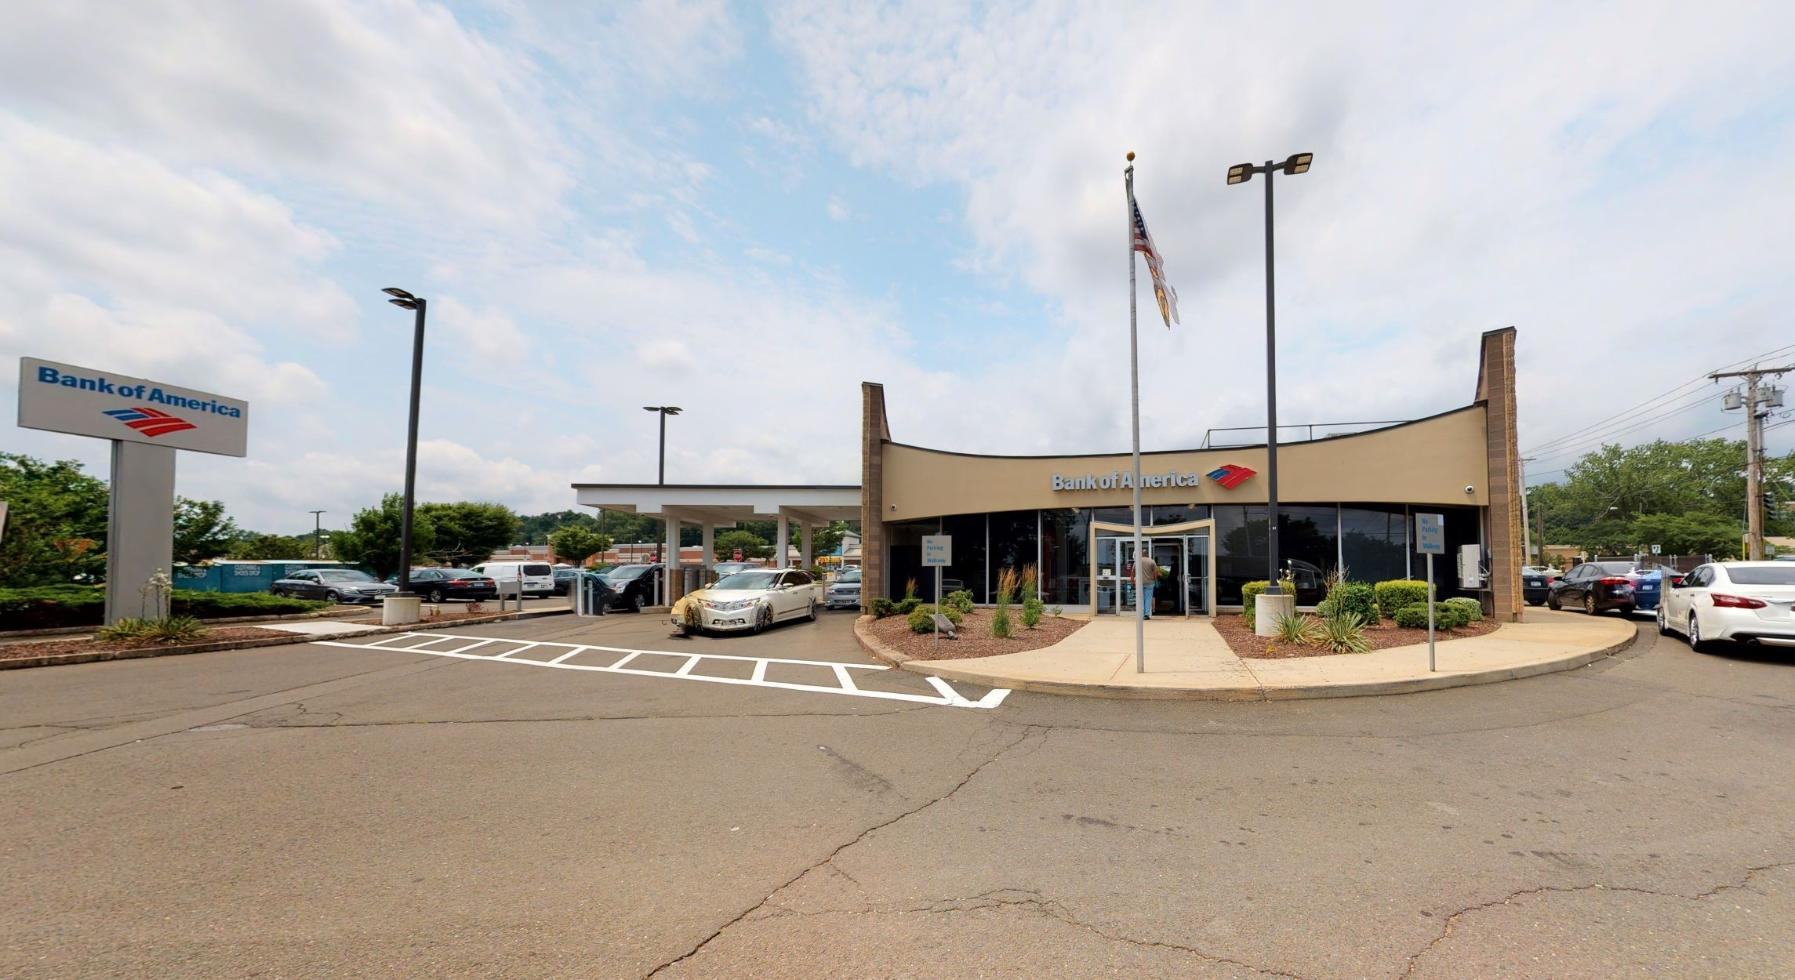 Bank of America financial center with drive-thru ATM   2340 Dixwell Ave, Hamden, CT 06514